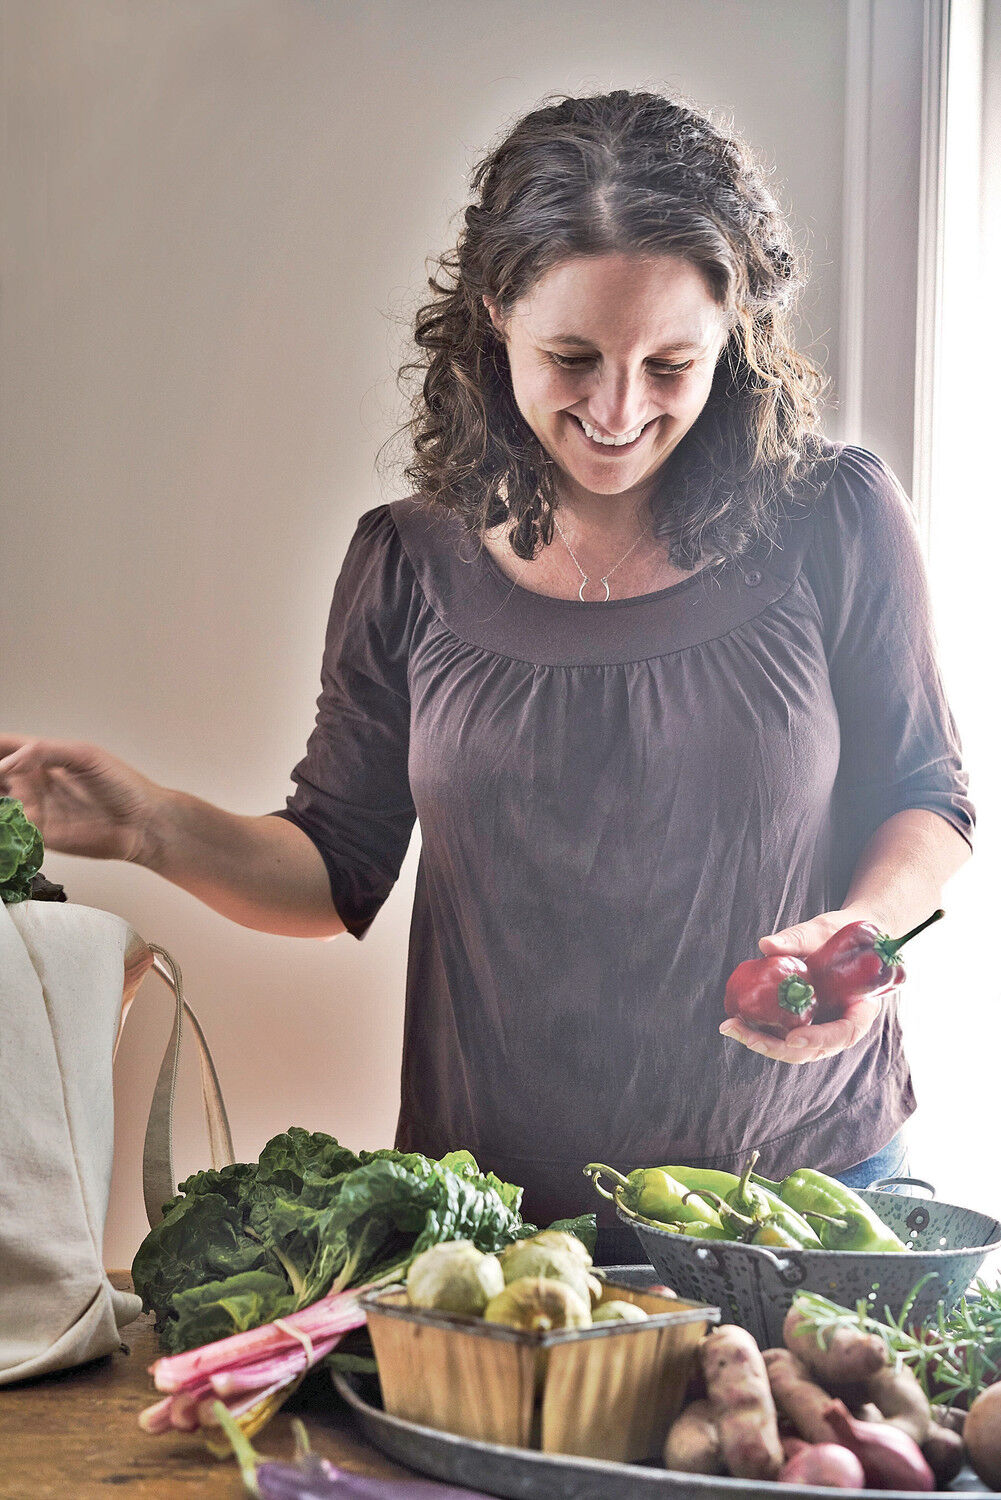 New cookbook: Alana Chernila wants you to eat your vegetables